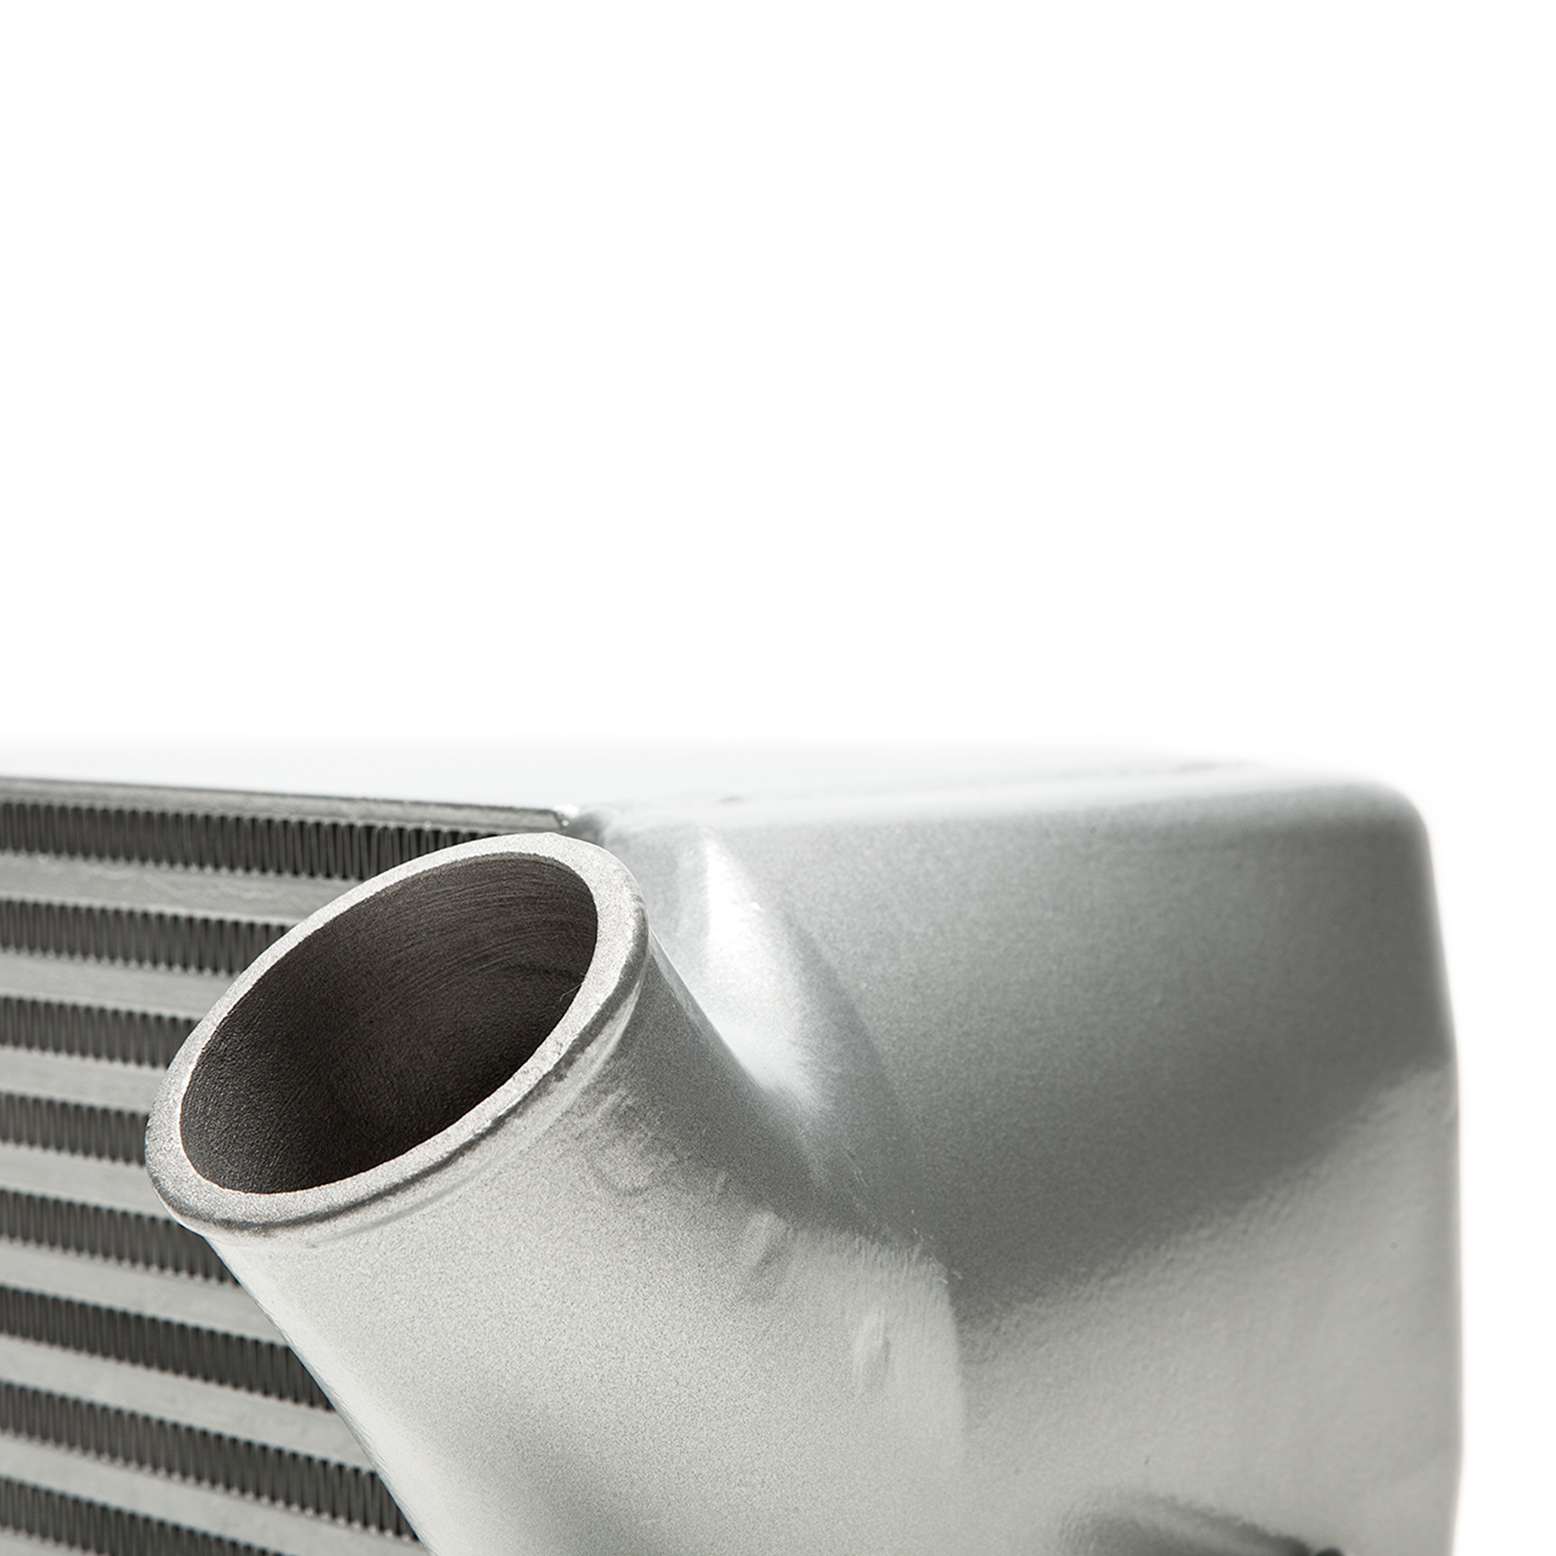 Ford Front Mount Intercooler Mustang Ecoboost 2015-2020